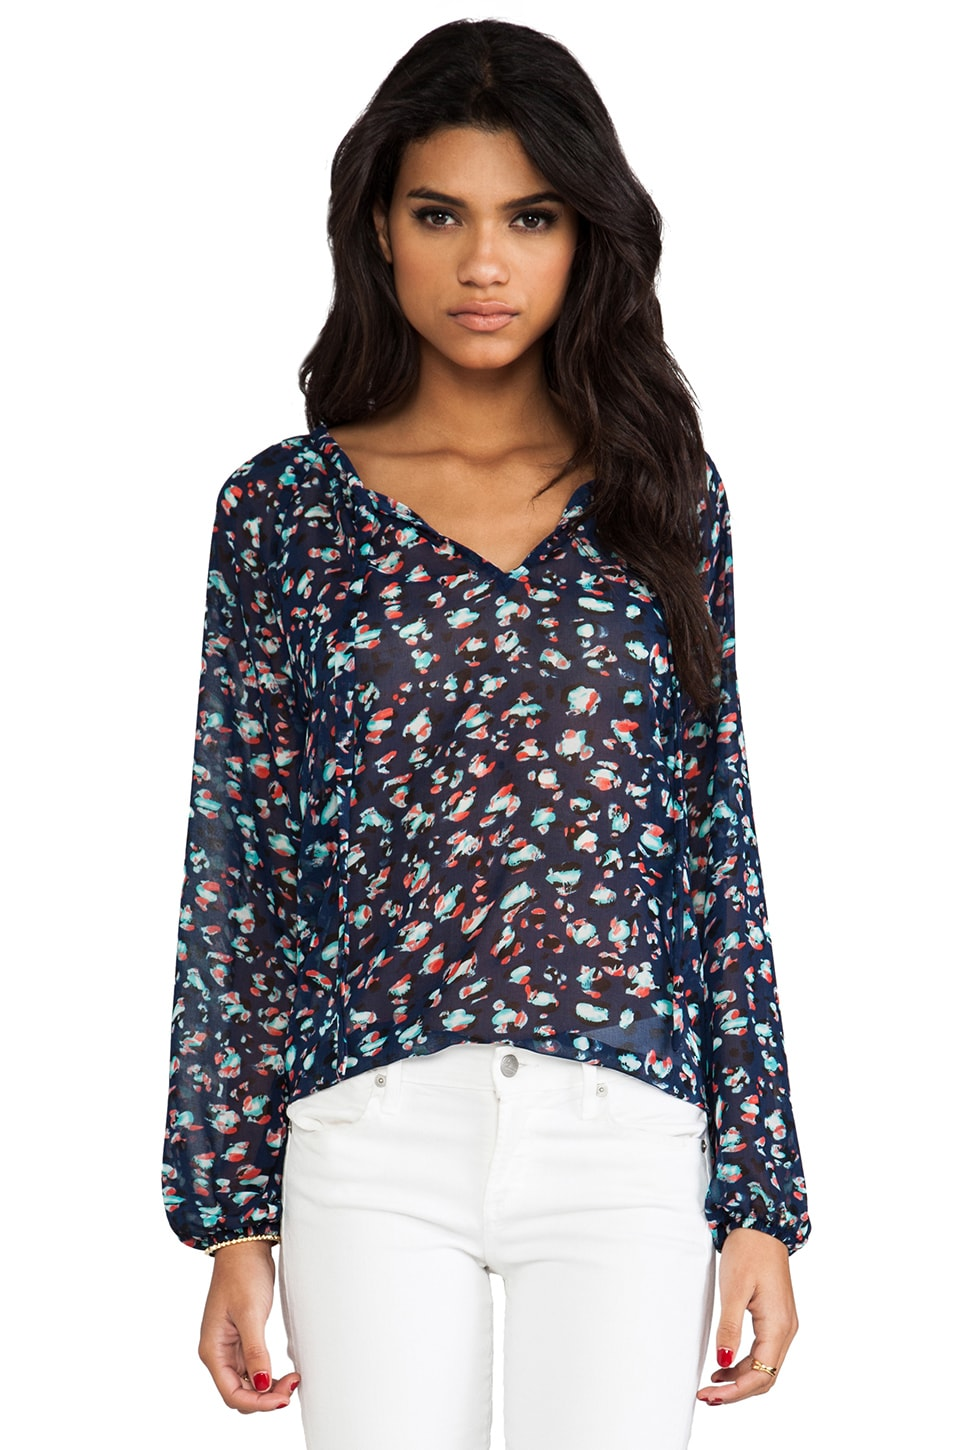 Eight Sixty Turtle Bay Blouse in Navy Aqua